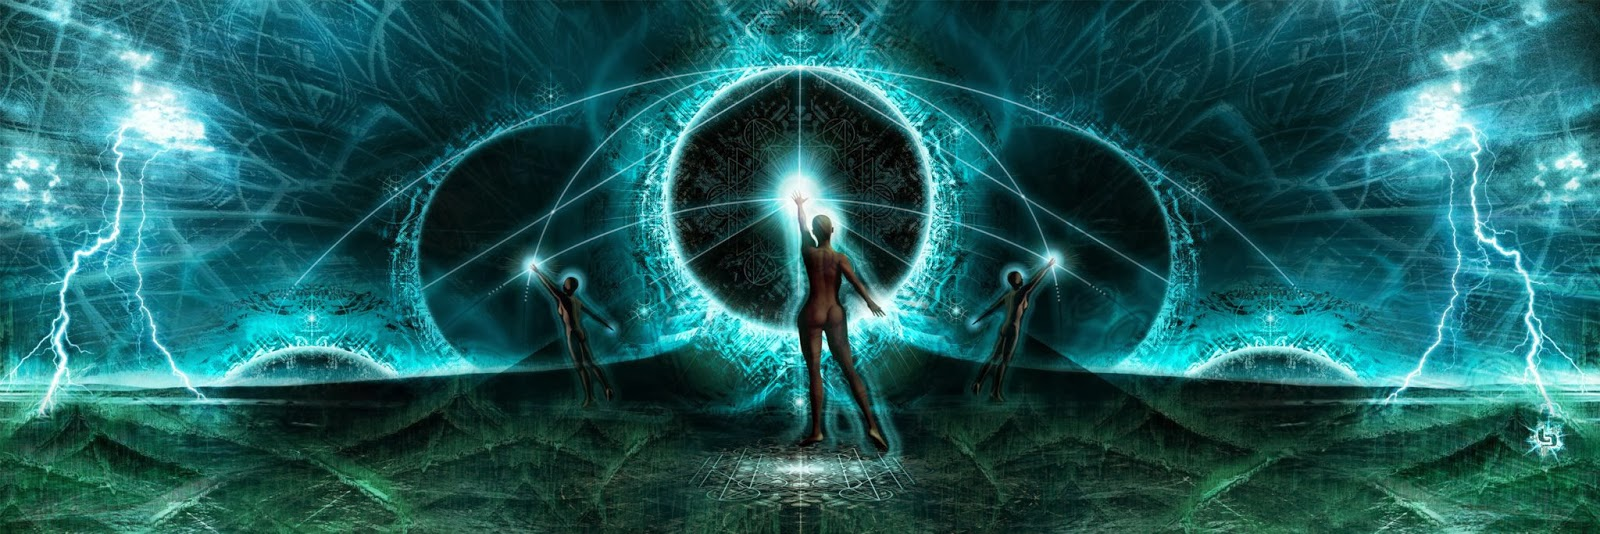 Augureye express quantum timelines quantum timelines reheart Choice Image